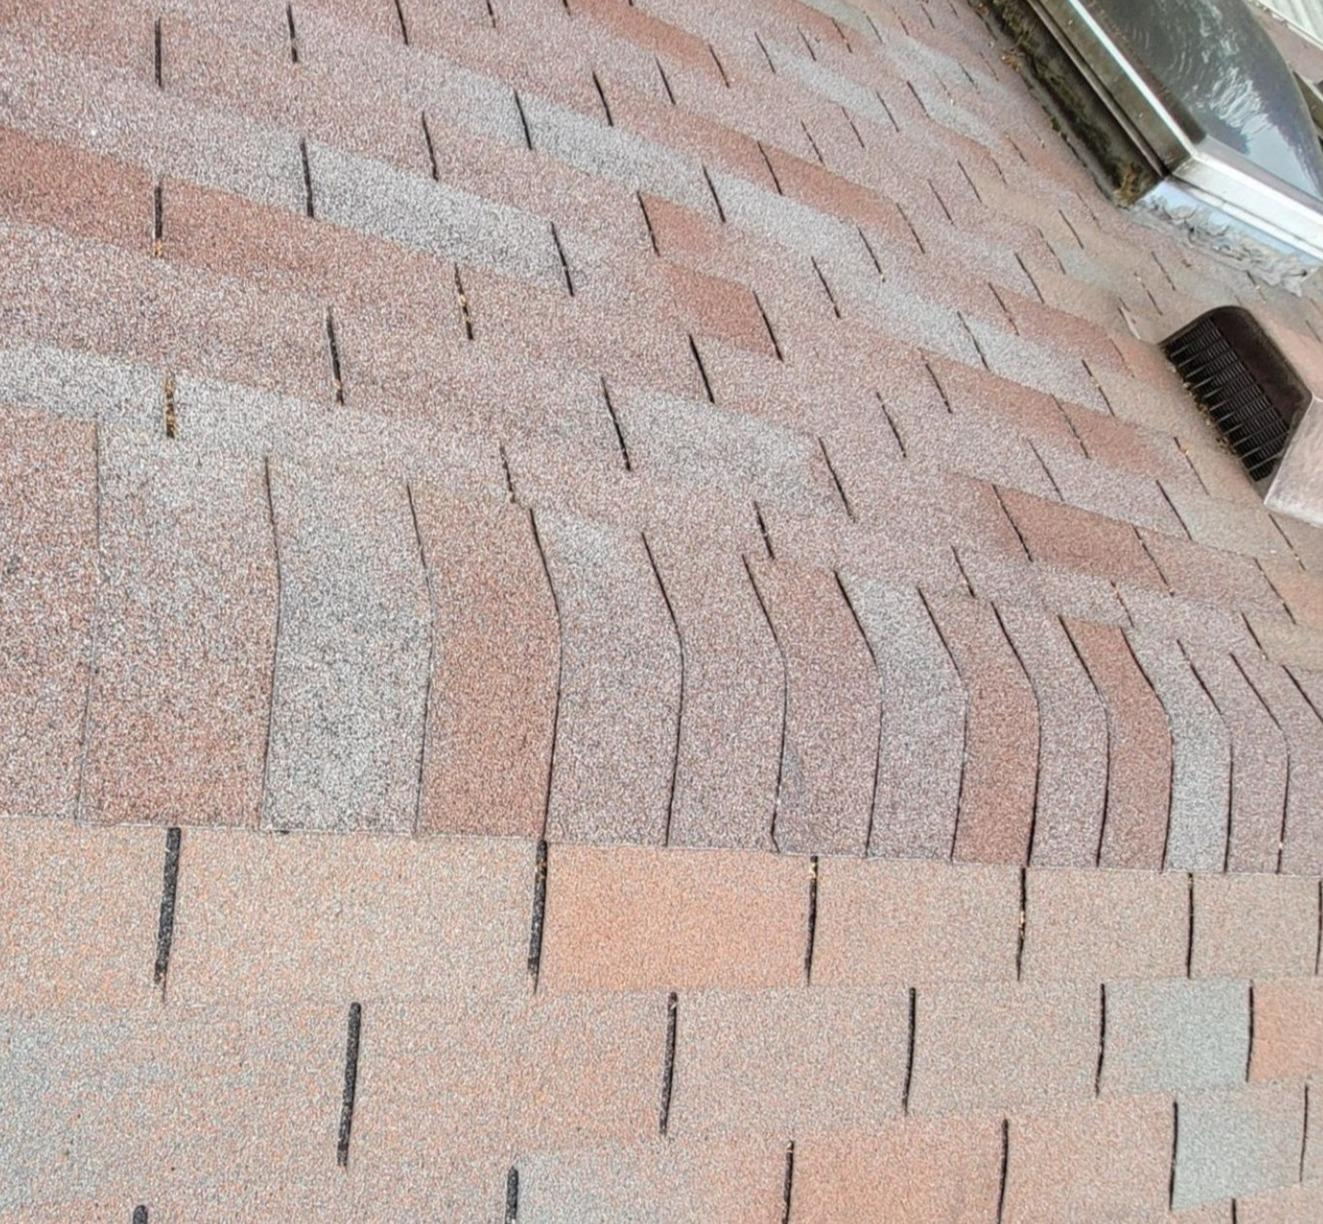 Roof Shingle Replacement in Indianapolis, IN - Before Photo